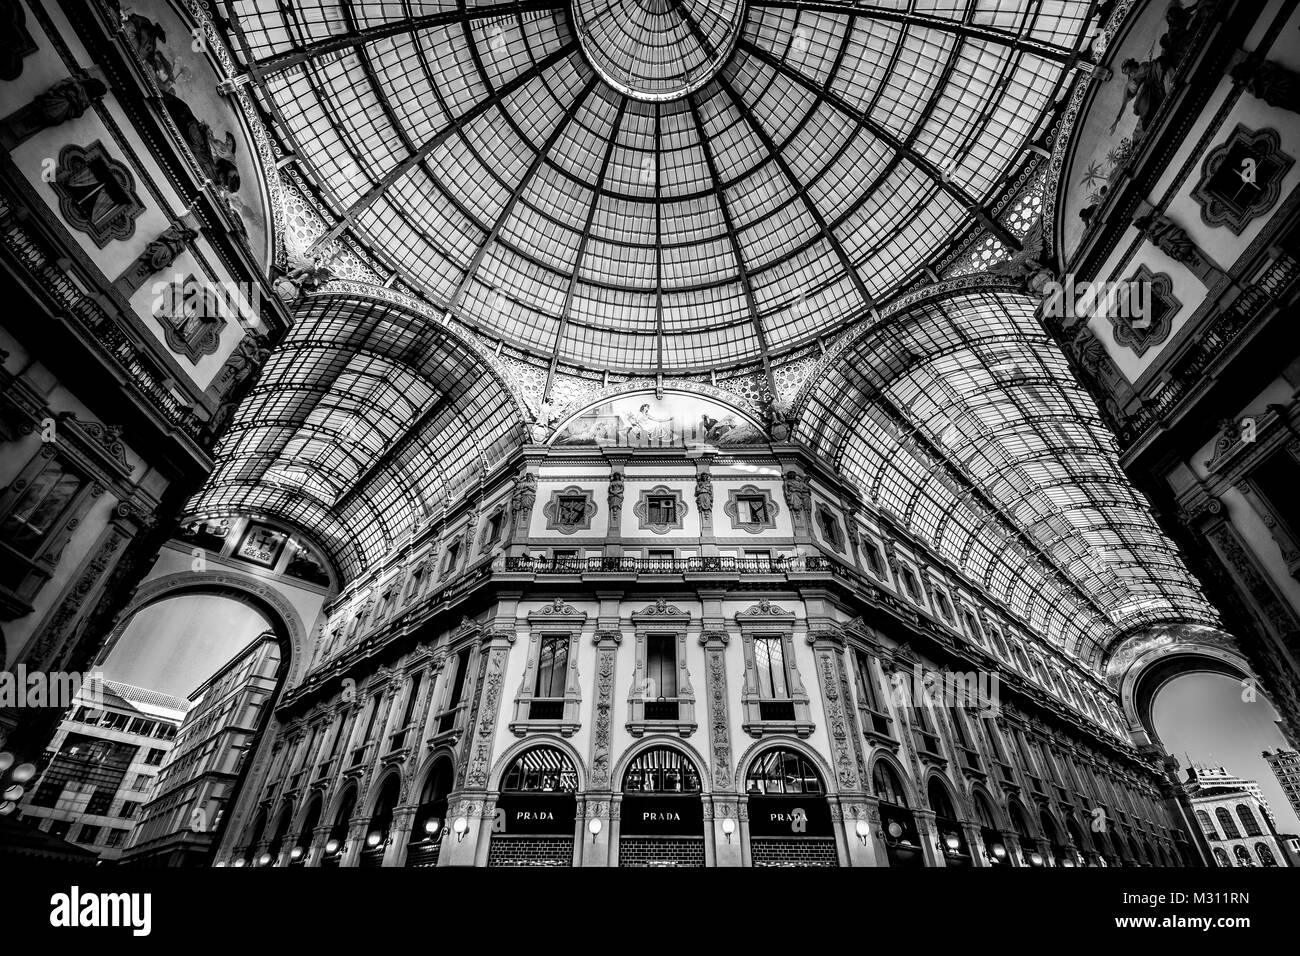 Galleria Vittorio Emanuele II in Milano. It's one of the world's oldest shopping malls, designed and built - Stock Image